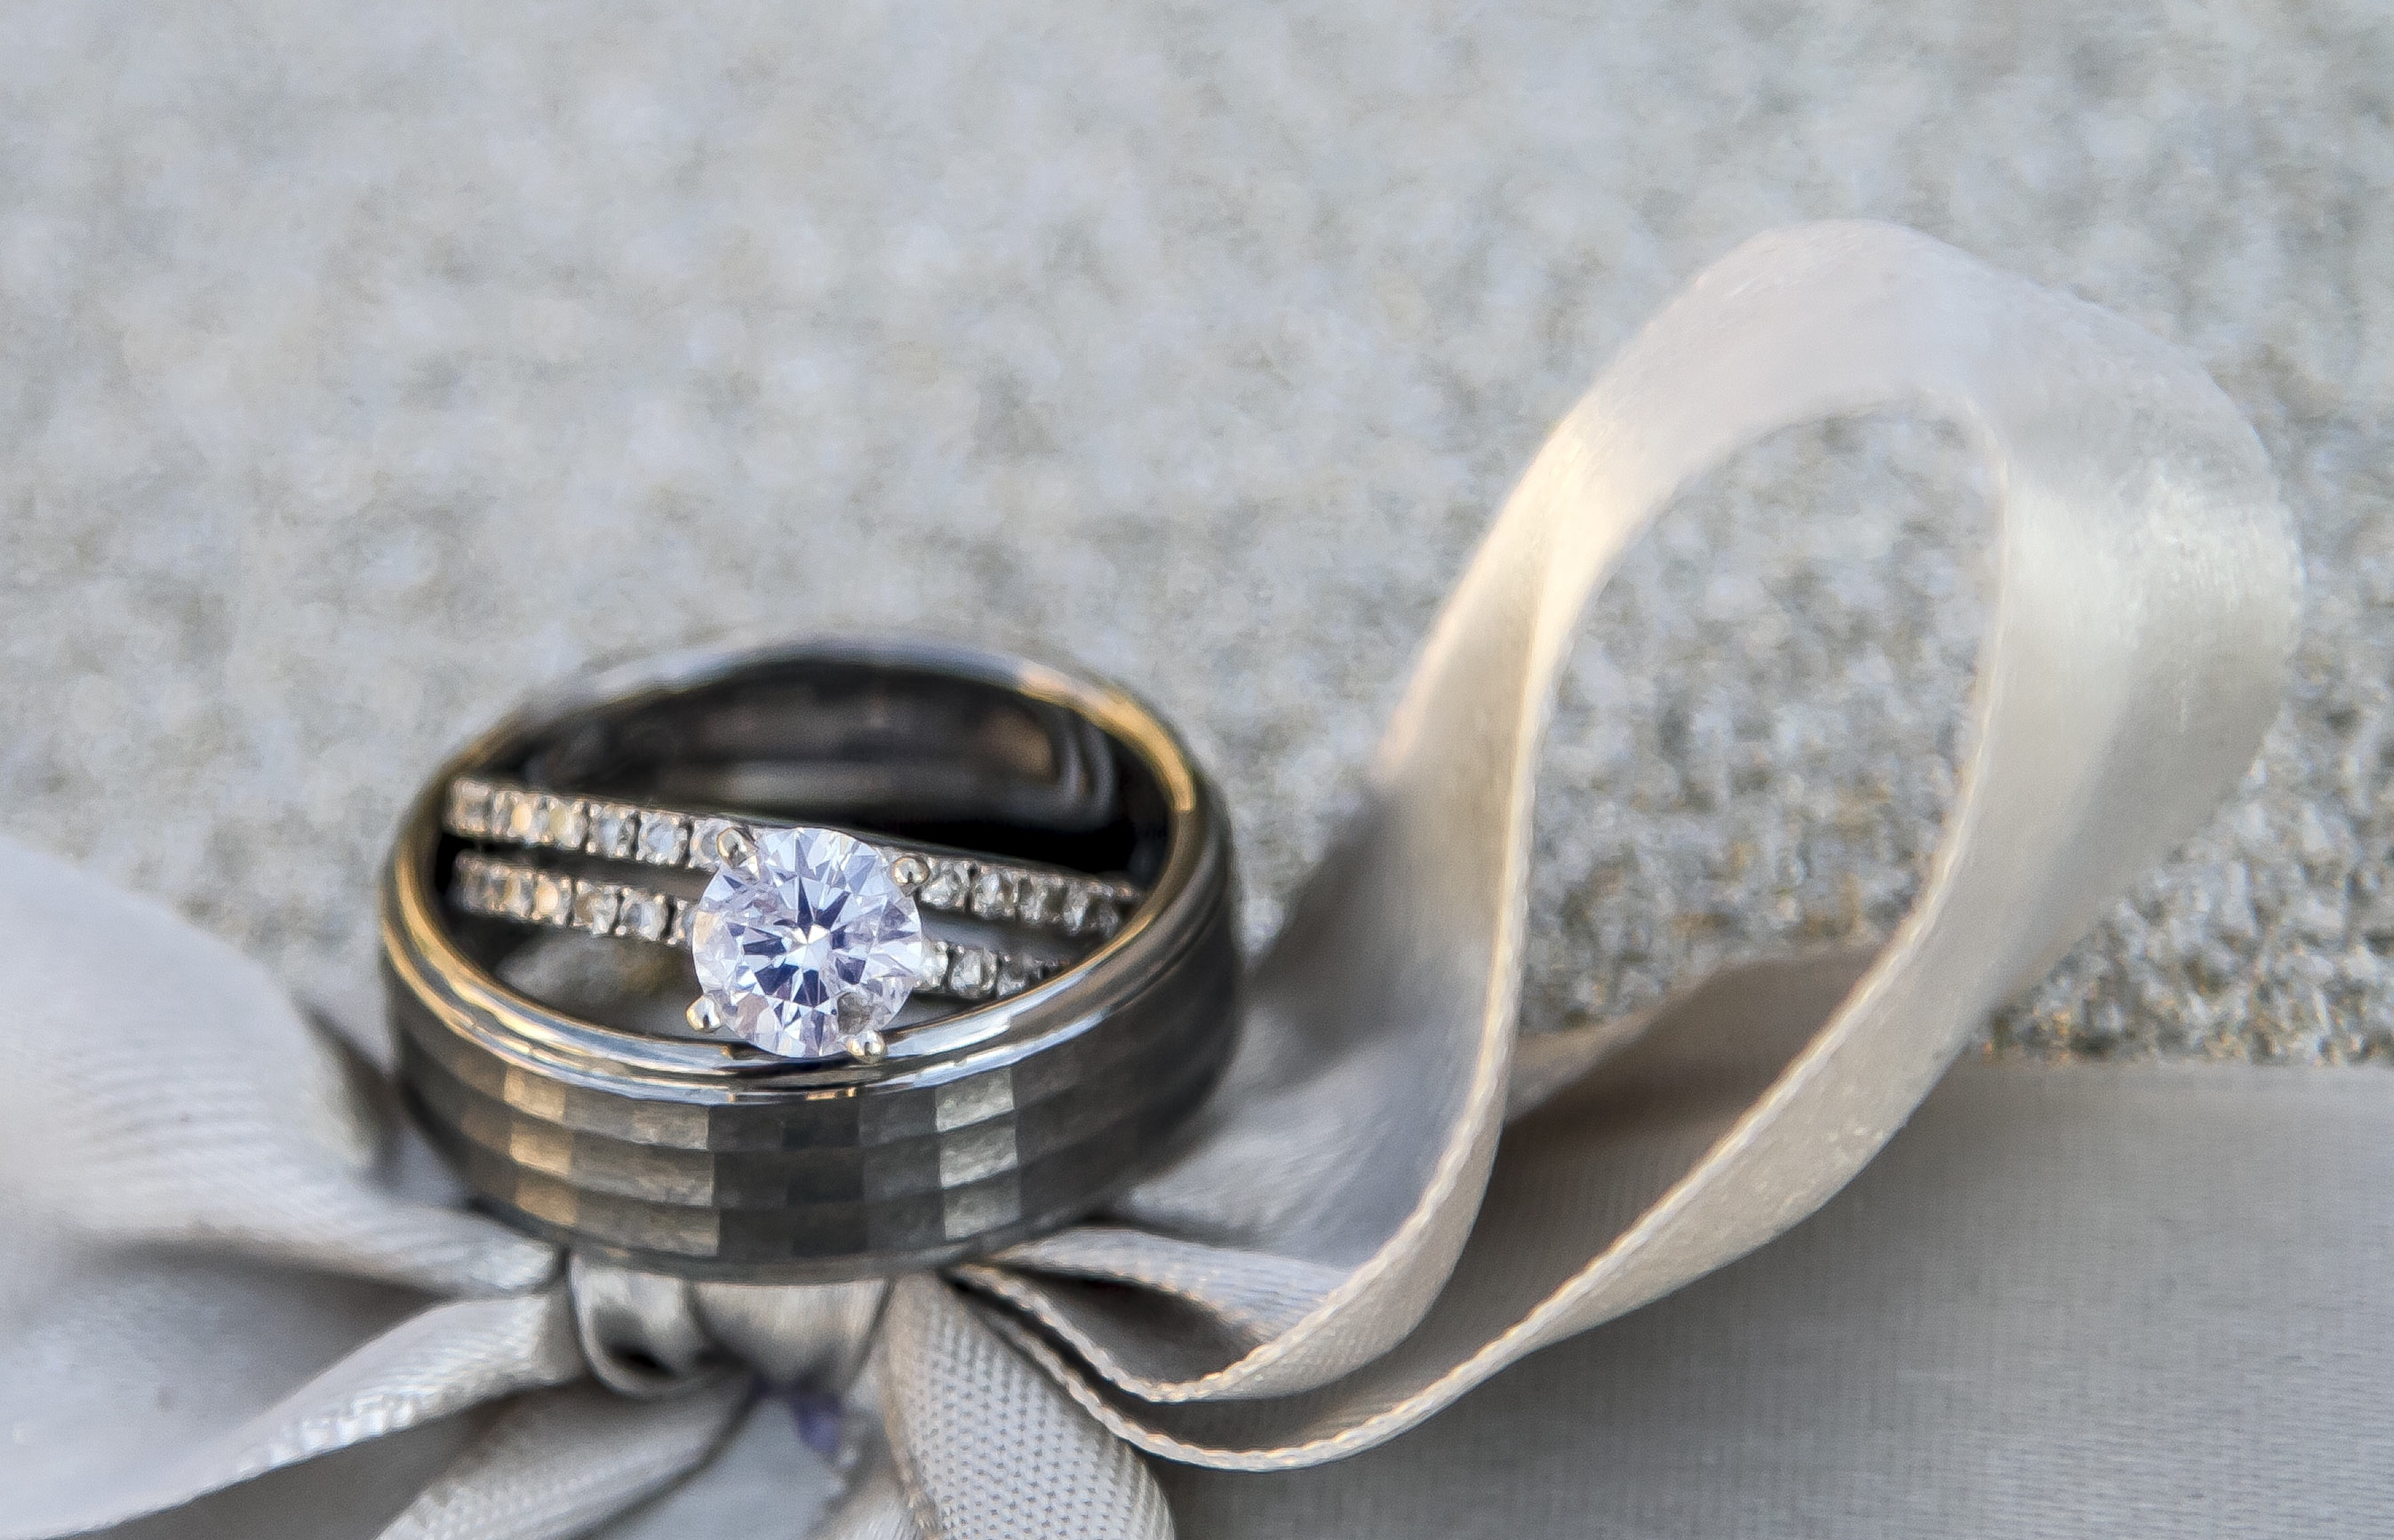 Image 4 of Reader's Rings II; Engagement Ring Photos Submitted by You!